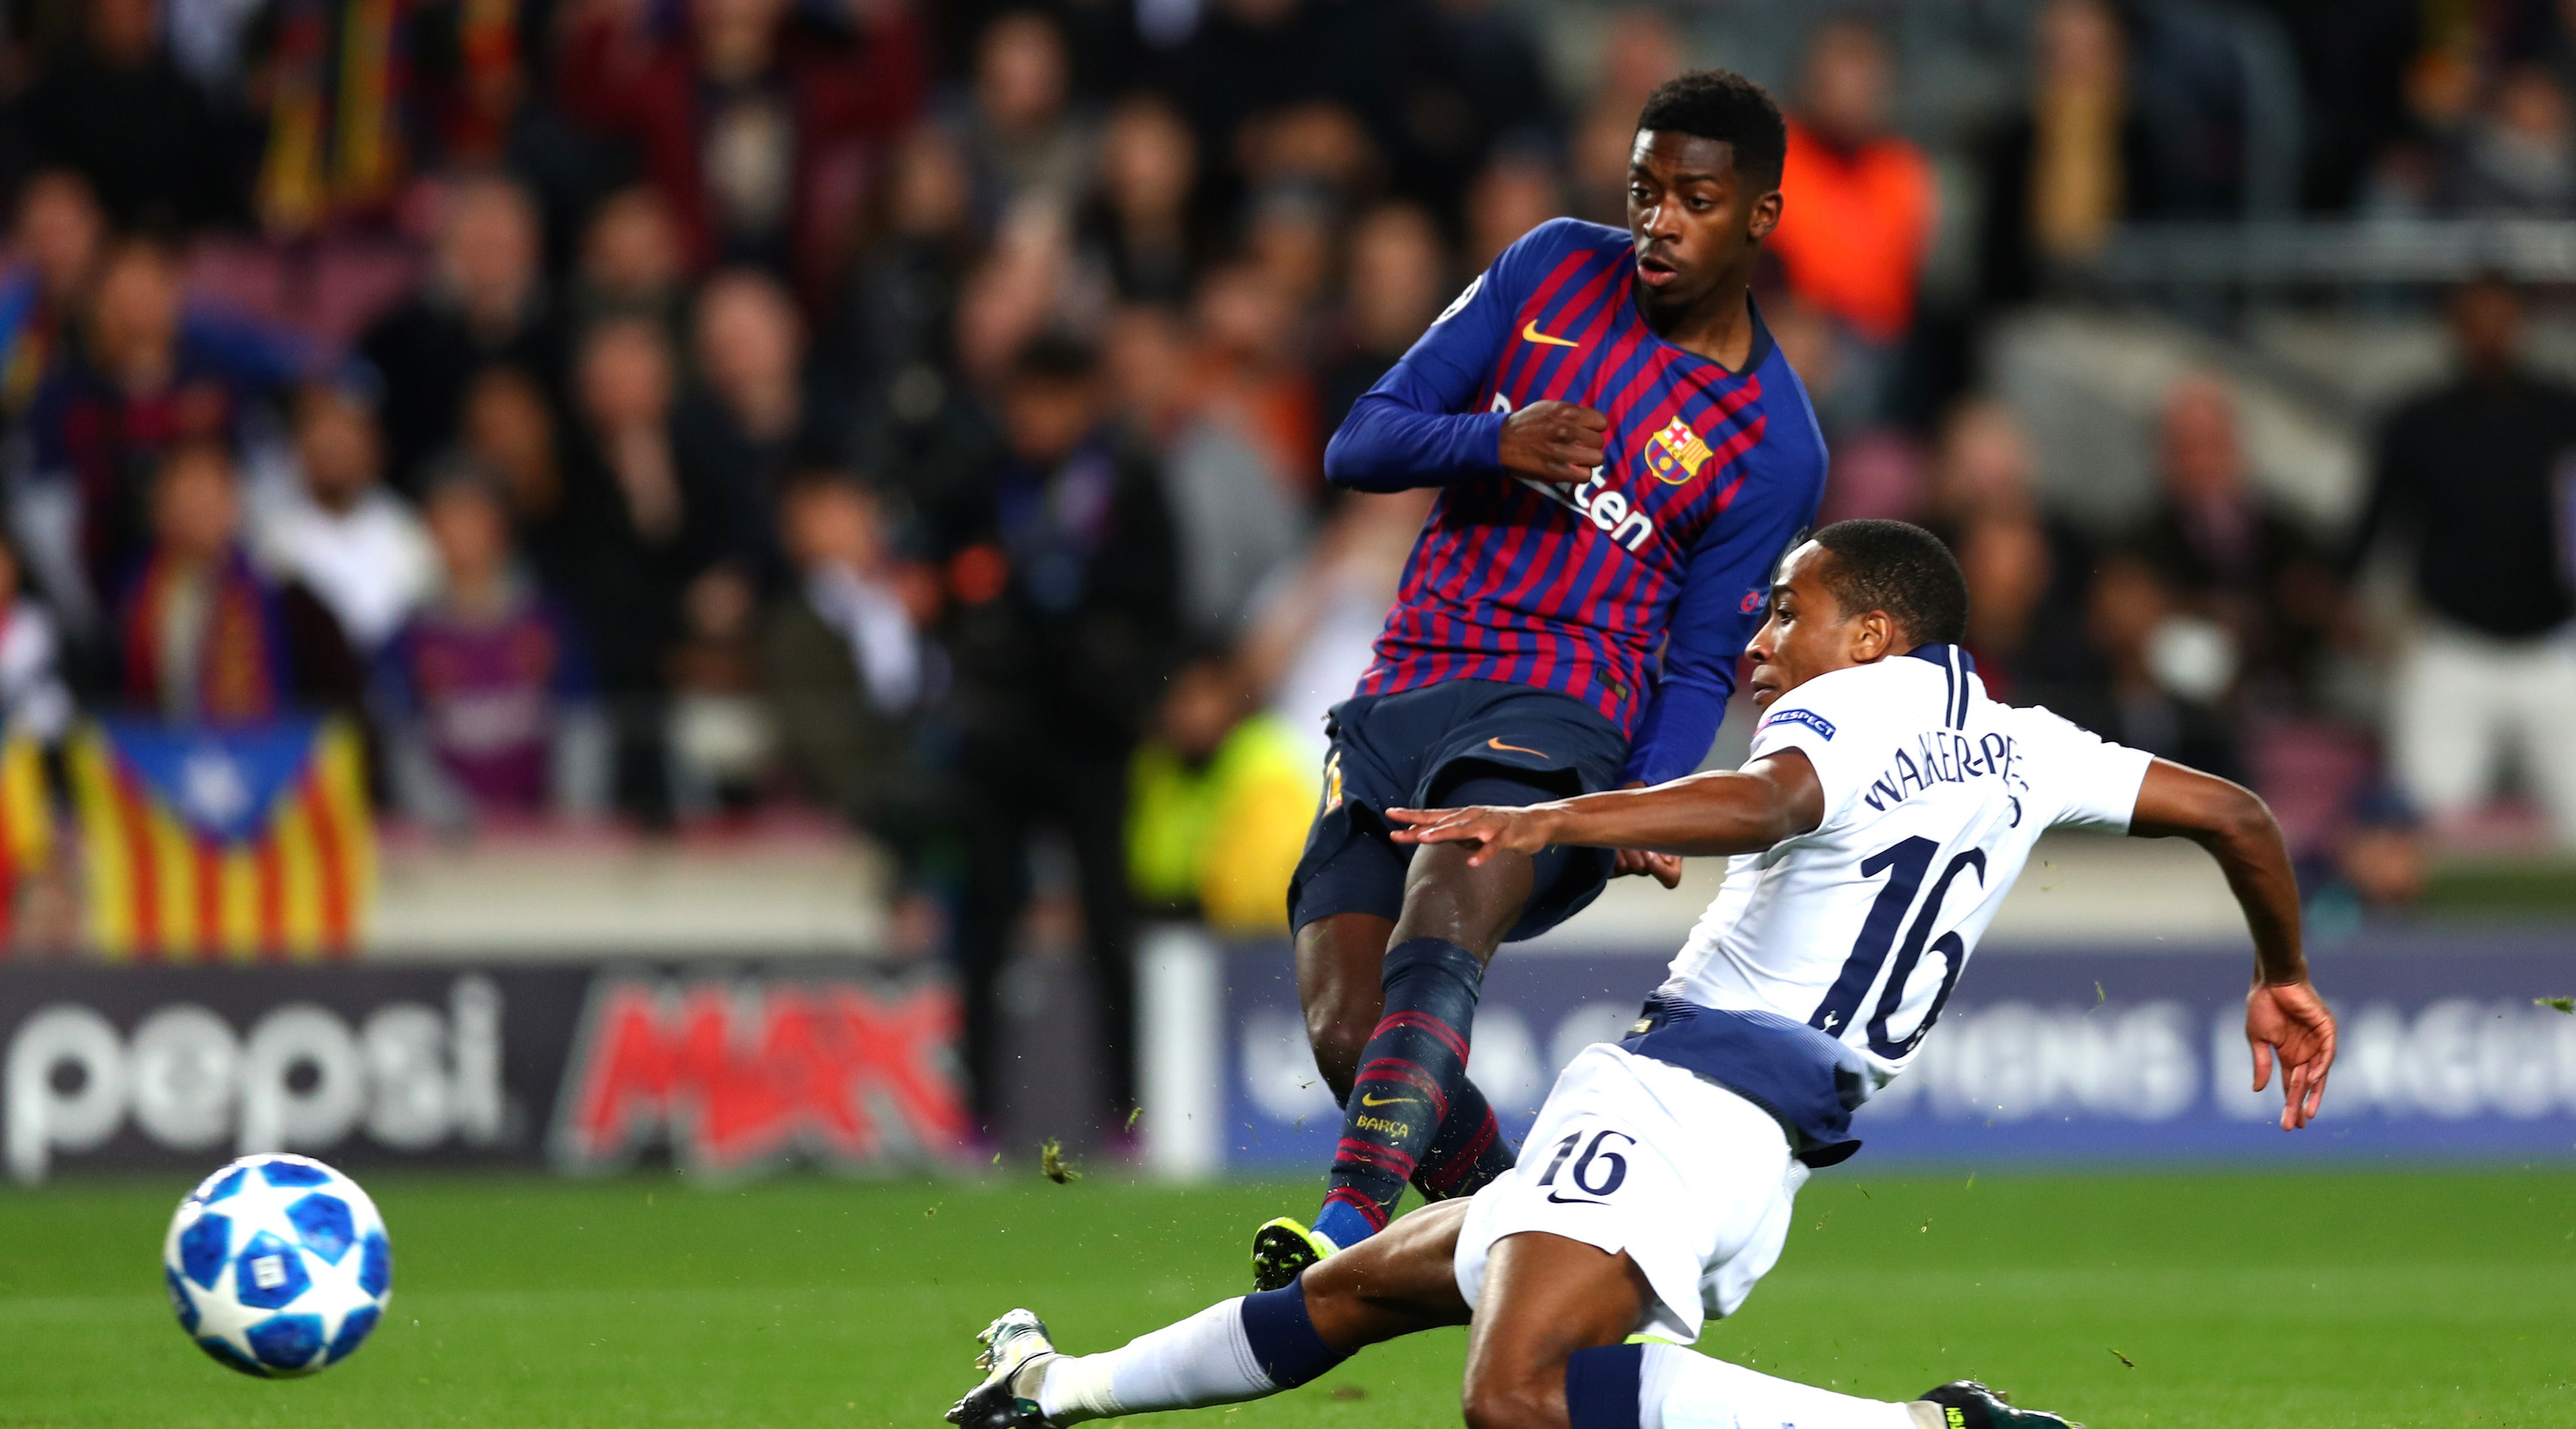 Ousmane Dembele of Barcelona (11) scores his team's first goal as Kyle Walkers-Peters of Tottenham Hotspur challenges during the UEFA Champions League Group B match between FC Barcelona and Tottenham Hotspur at Camp Nou on December 11, 2018 in Barcelona, Spain. (Photo by Clive Rose/Getty Images)